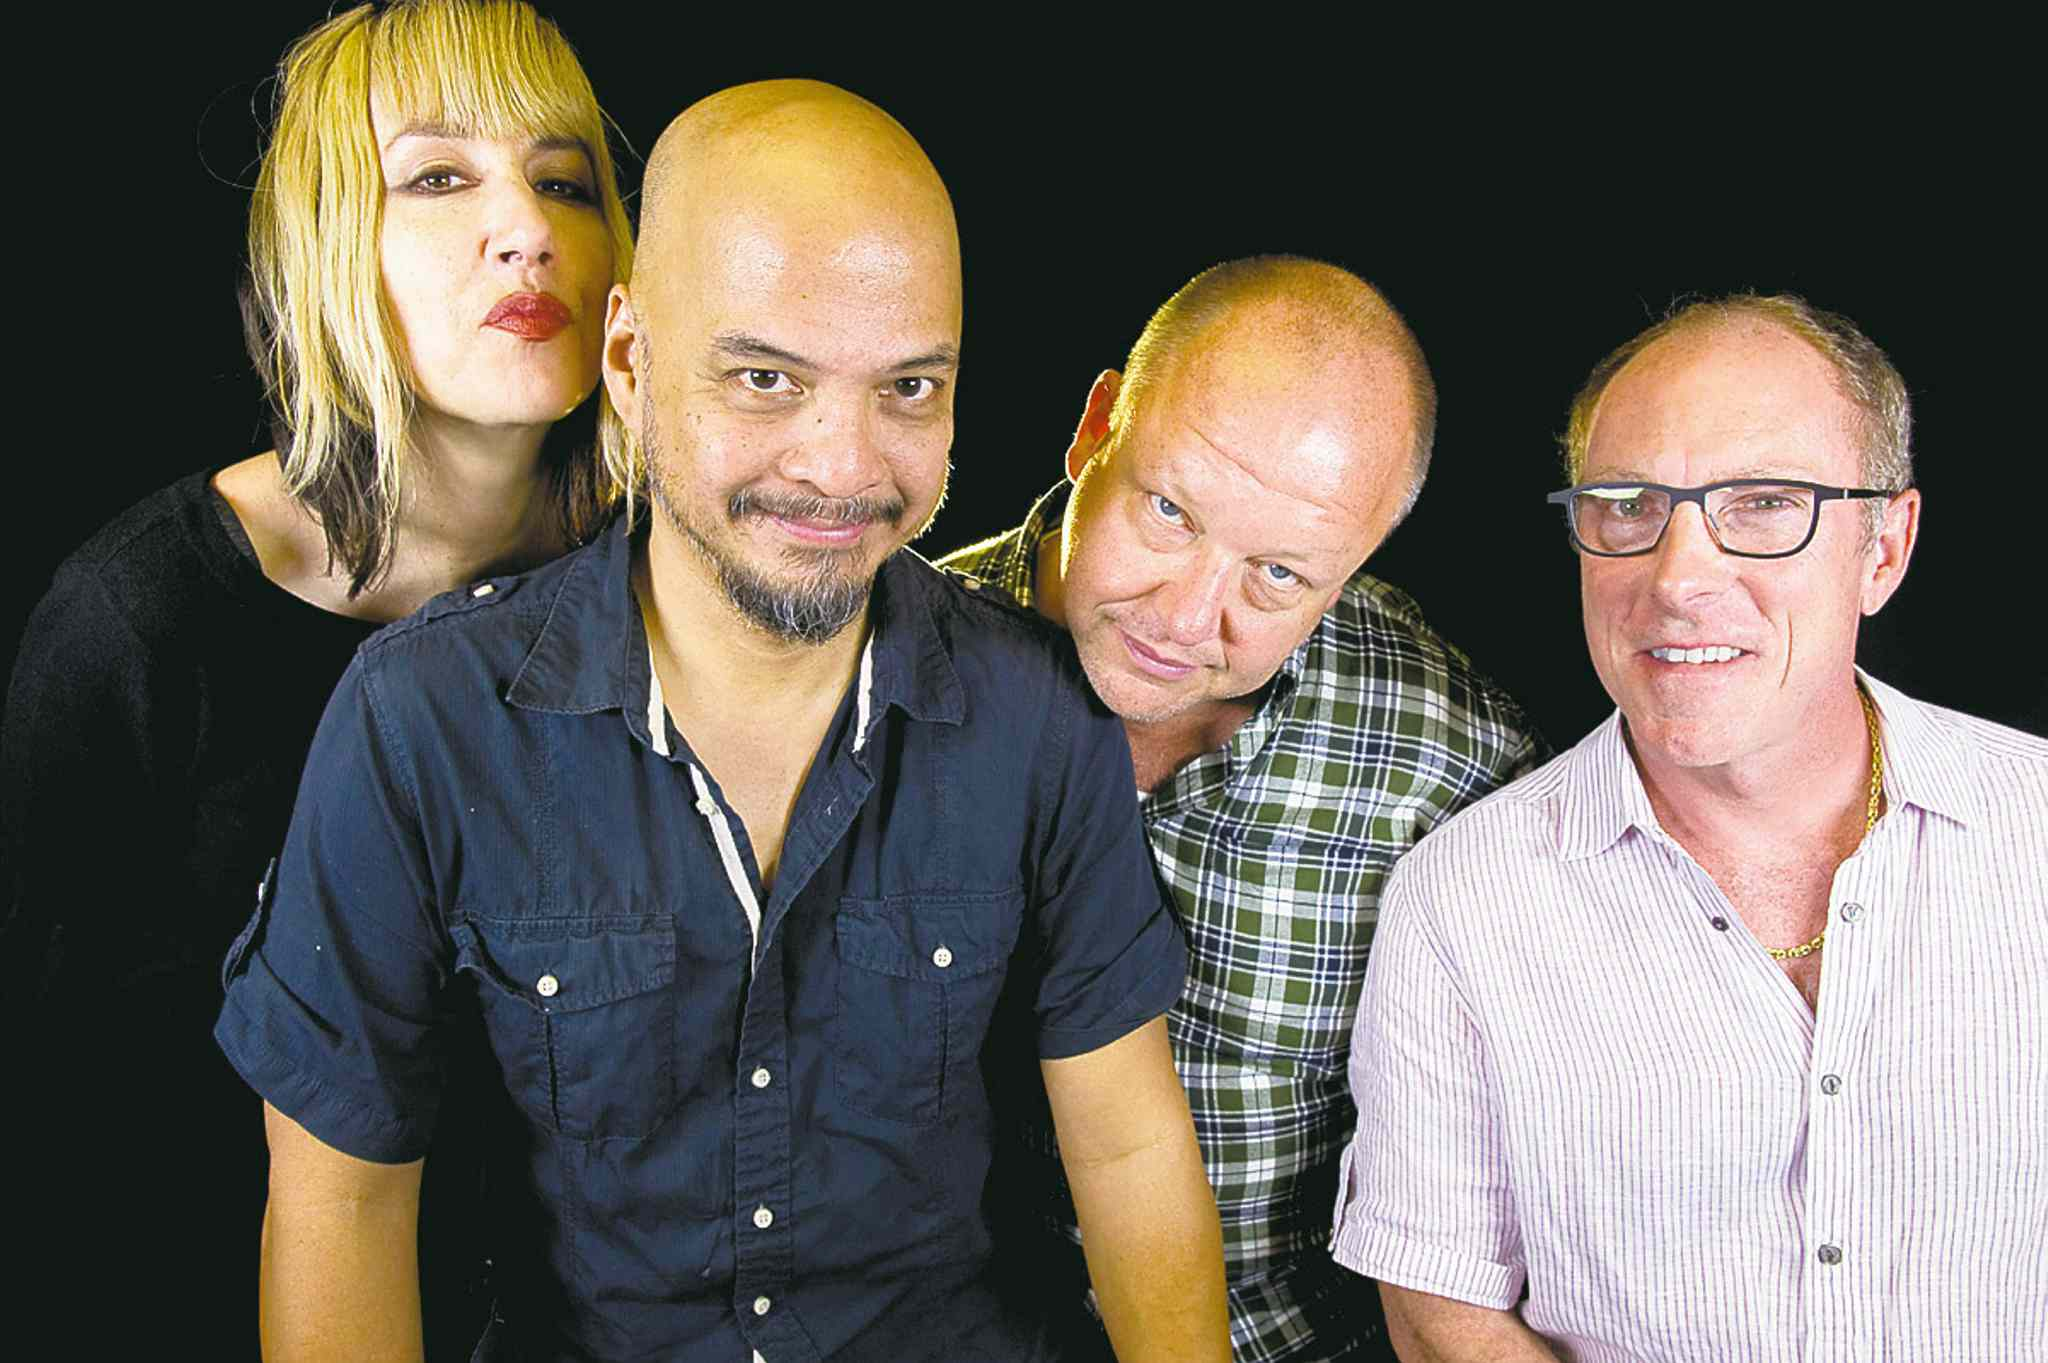 In this Friday, Sept. 20, 2013 photo, rock band The Pixies, from left, Kim Shattuck, Joey Santiago, Black Francis and David Lovering, pose for a portrait in New York. In late June 2013, a video for a new song,